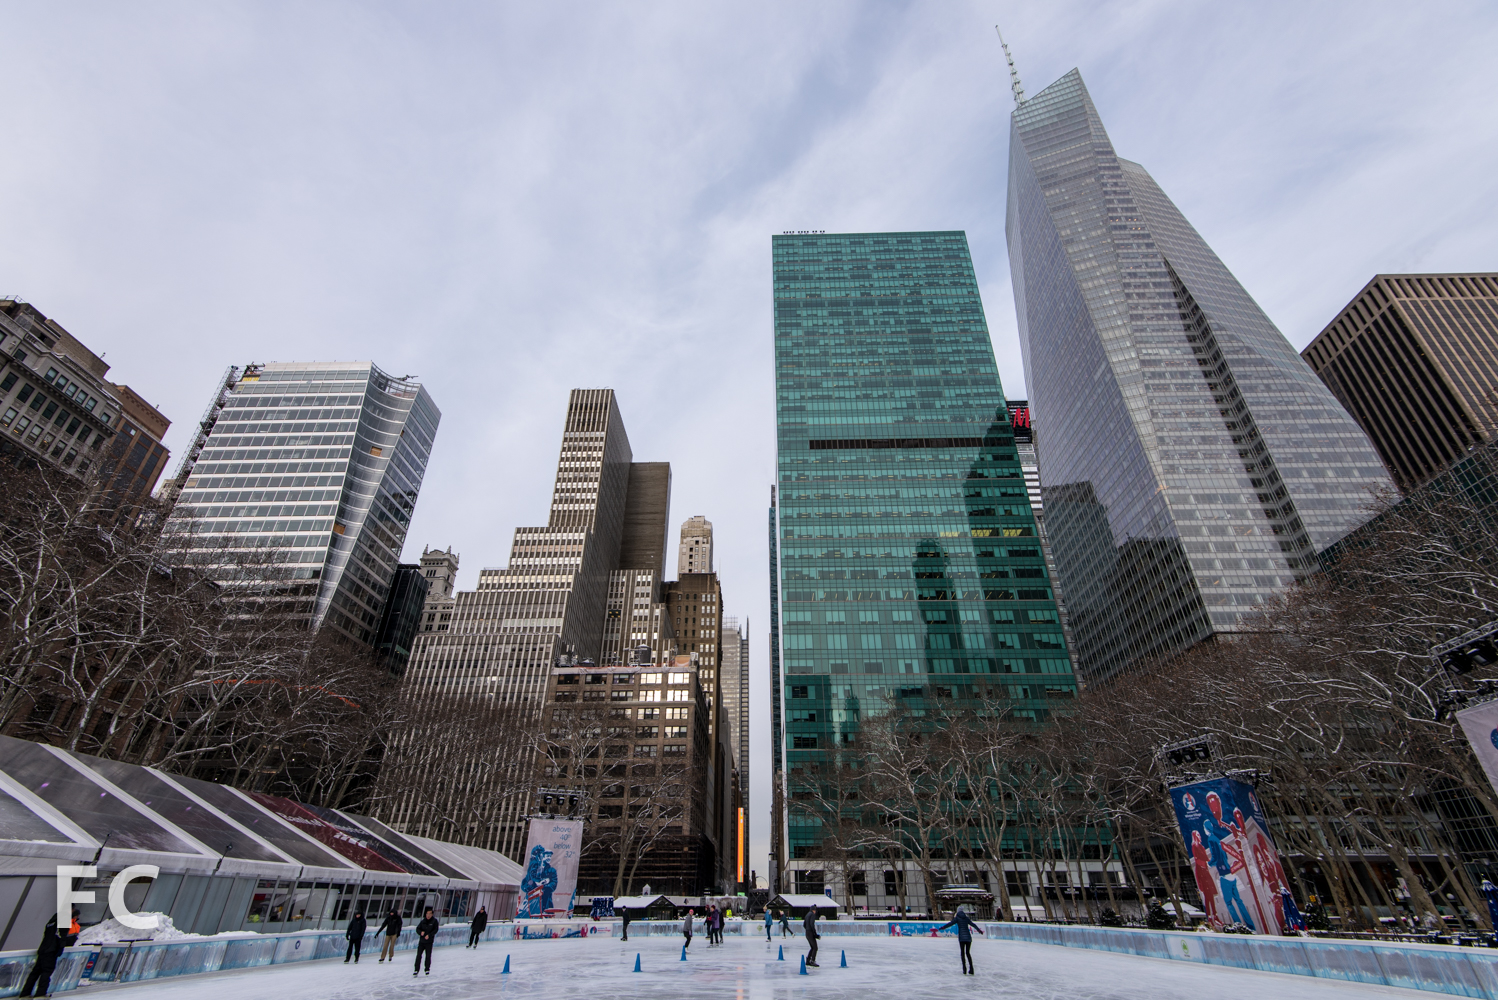 Looking west from Bryant Park with One Bryant Park (far right) and 7 Bryant Park (far left).